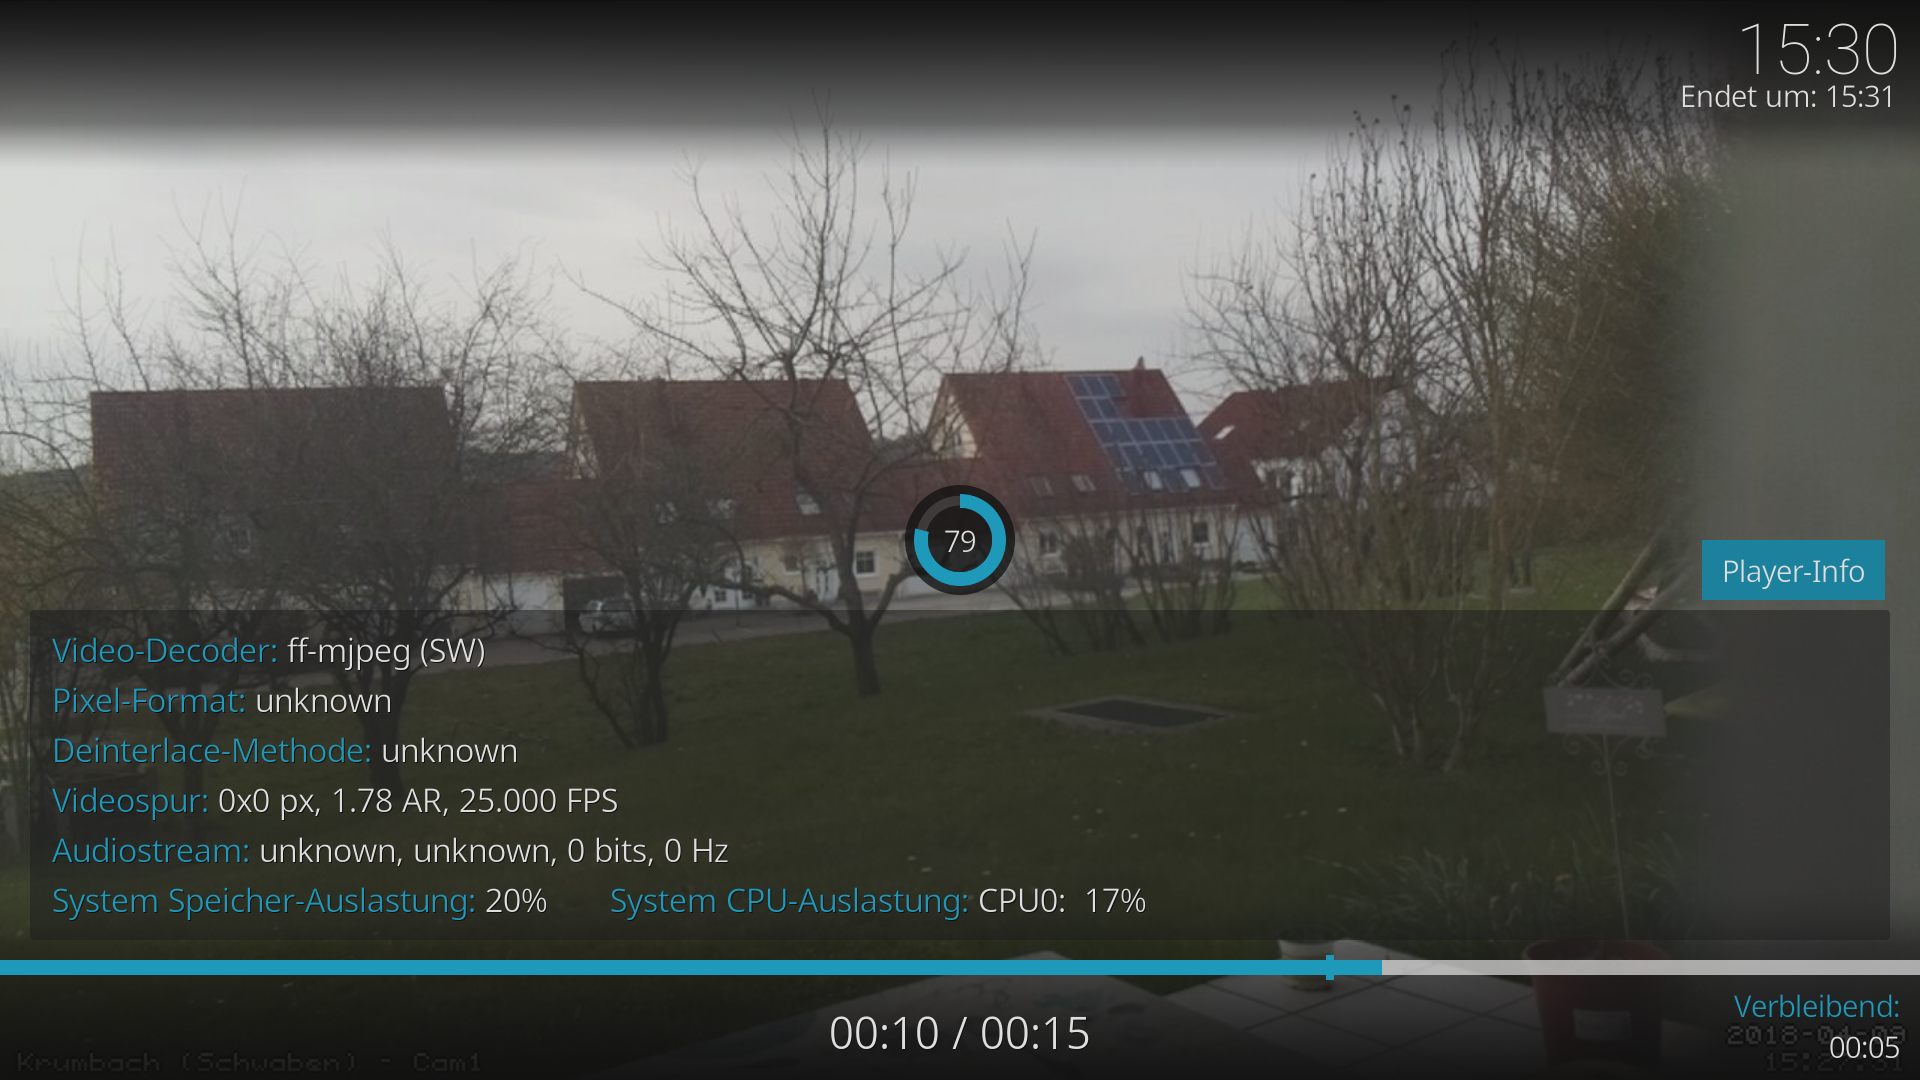 Display slow (1fps) camera stream: Minutes for update, then